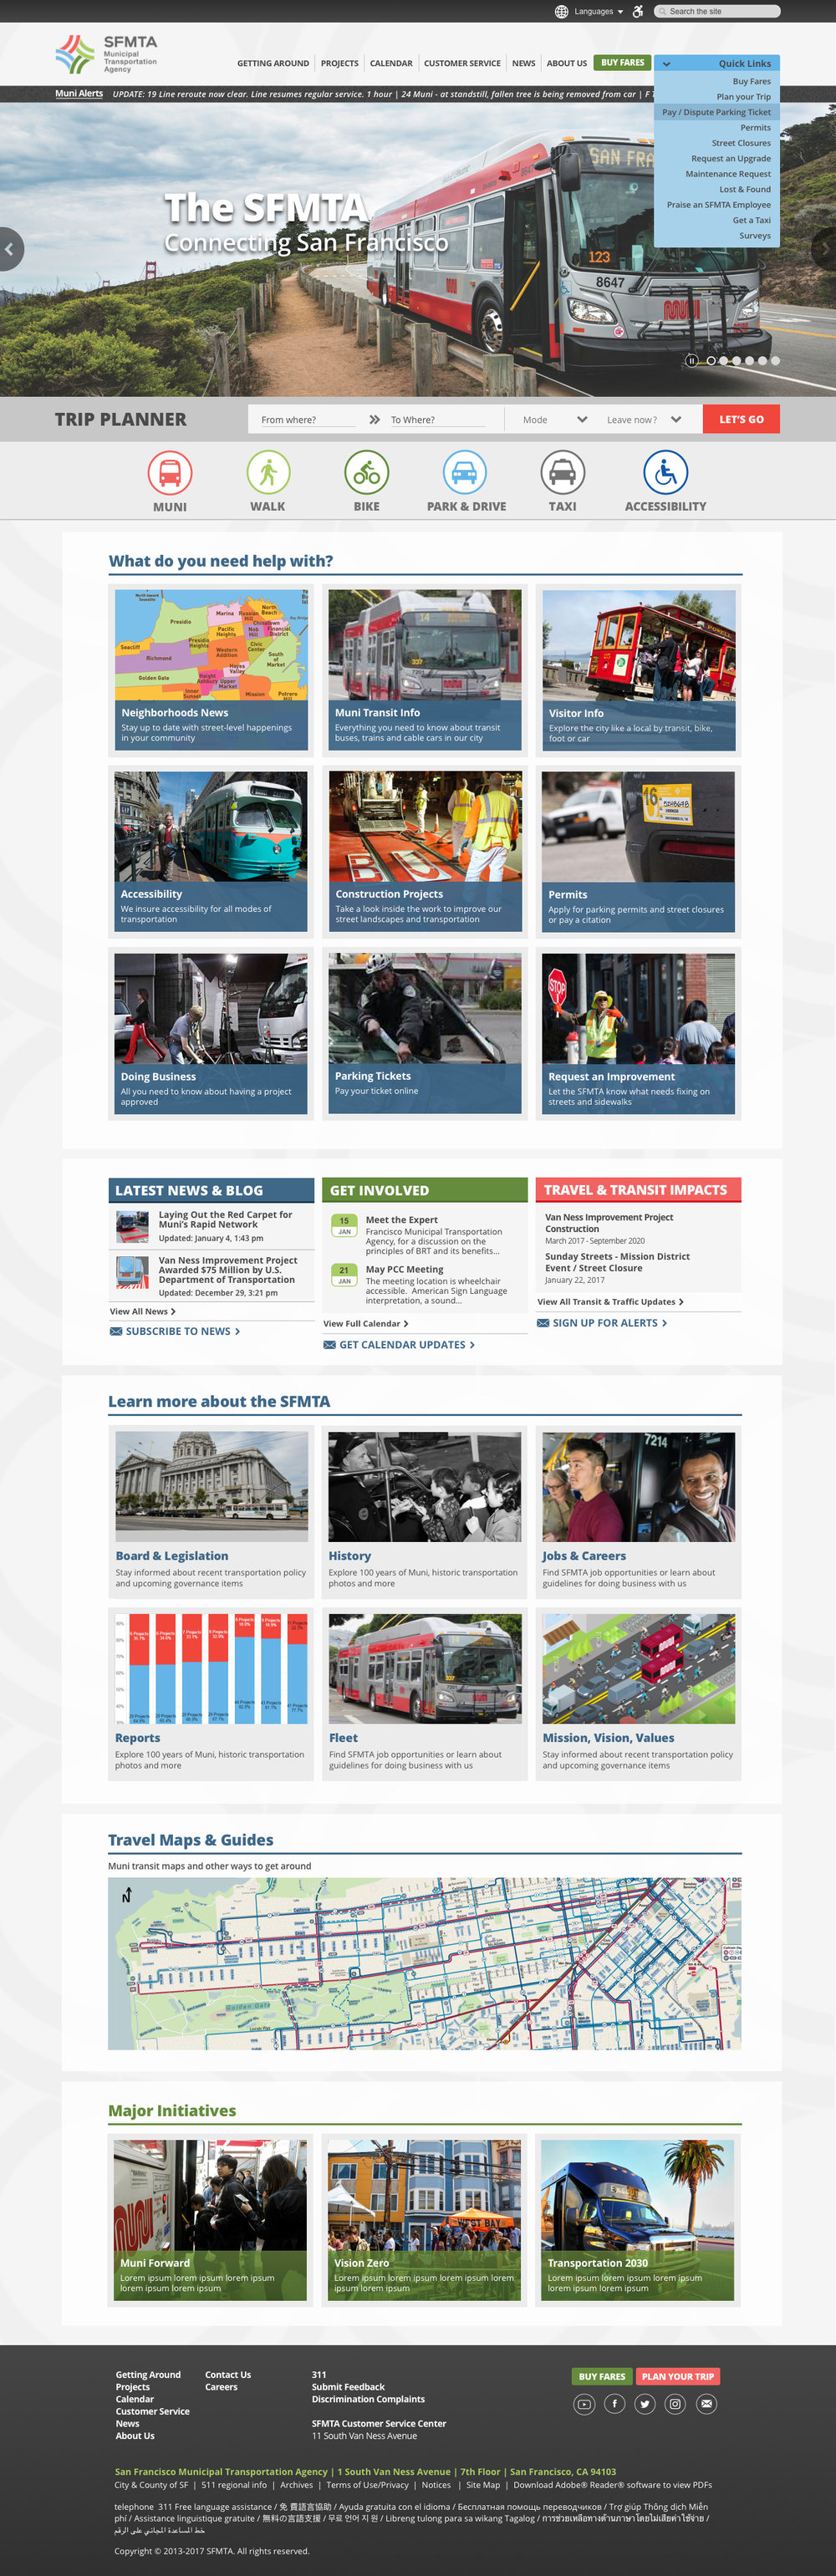 inkedesign-sfmta-website-hp-all.jpg